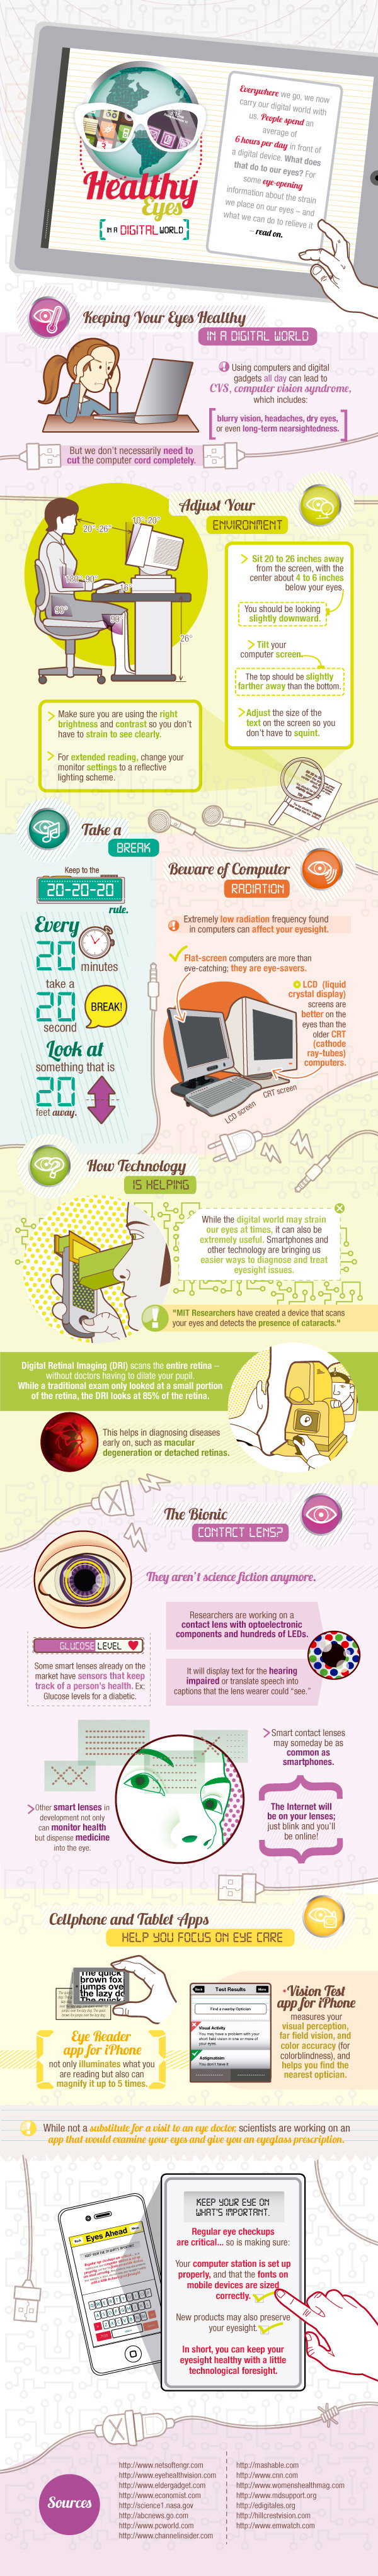 ComputerVisionSyndrome healthy eyes digital Computer Vision Syndrome [INFOGRAPHIC]